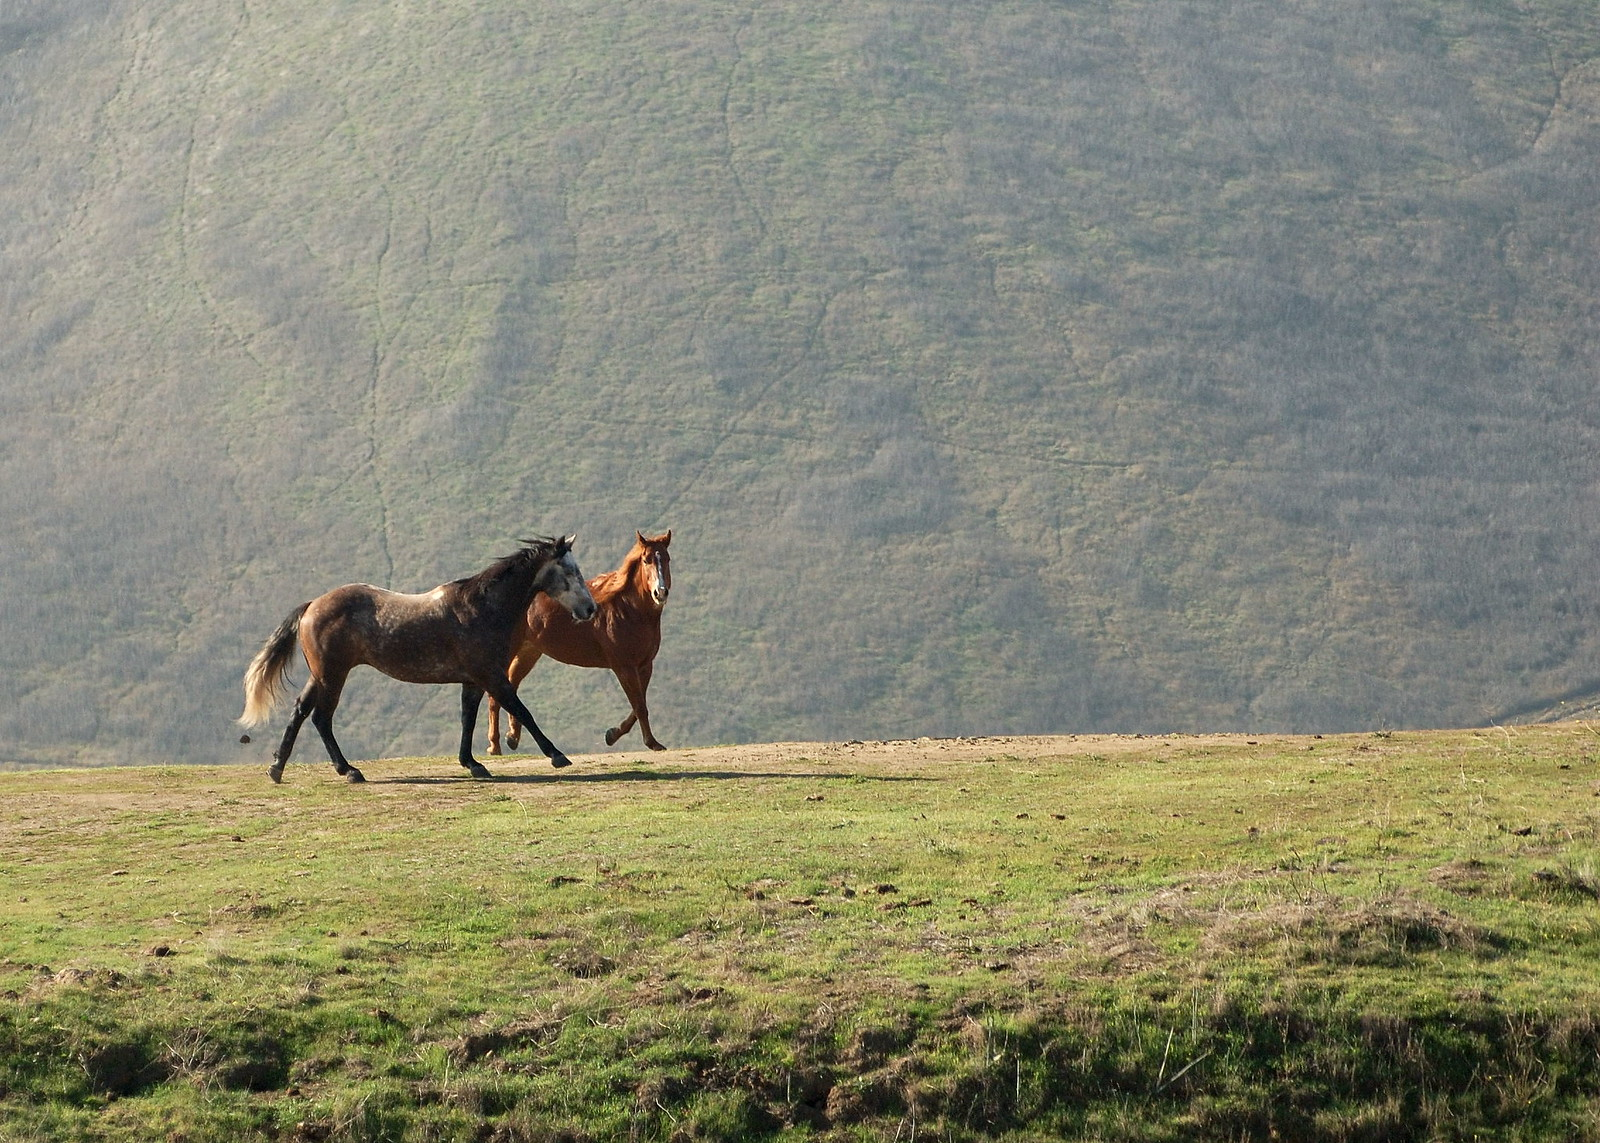 Horses in Ed R. Levin County Park